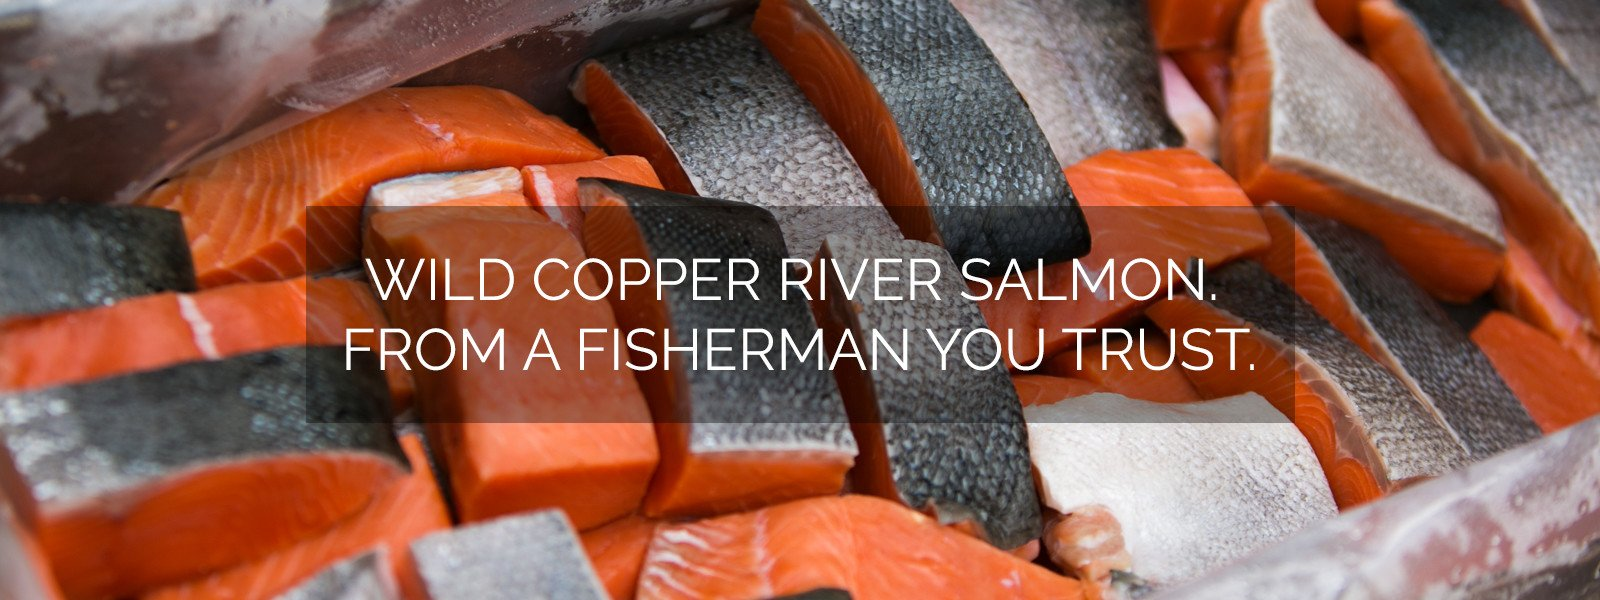 Wild Copper River Salmon from a fisherman you trust.